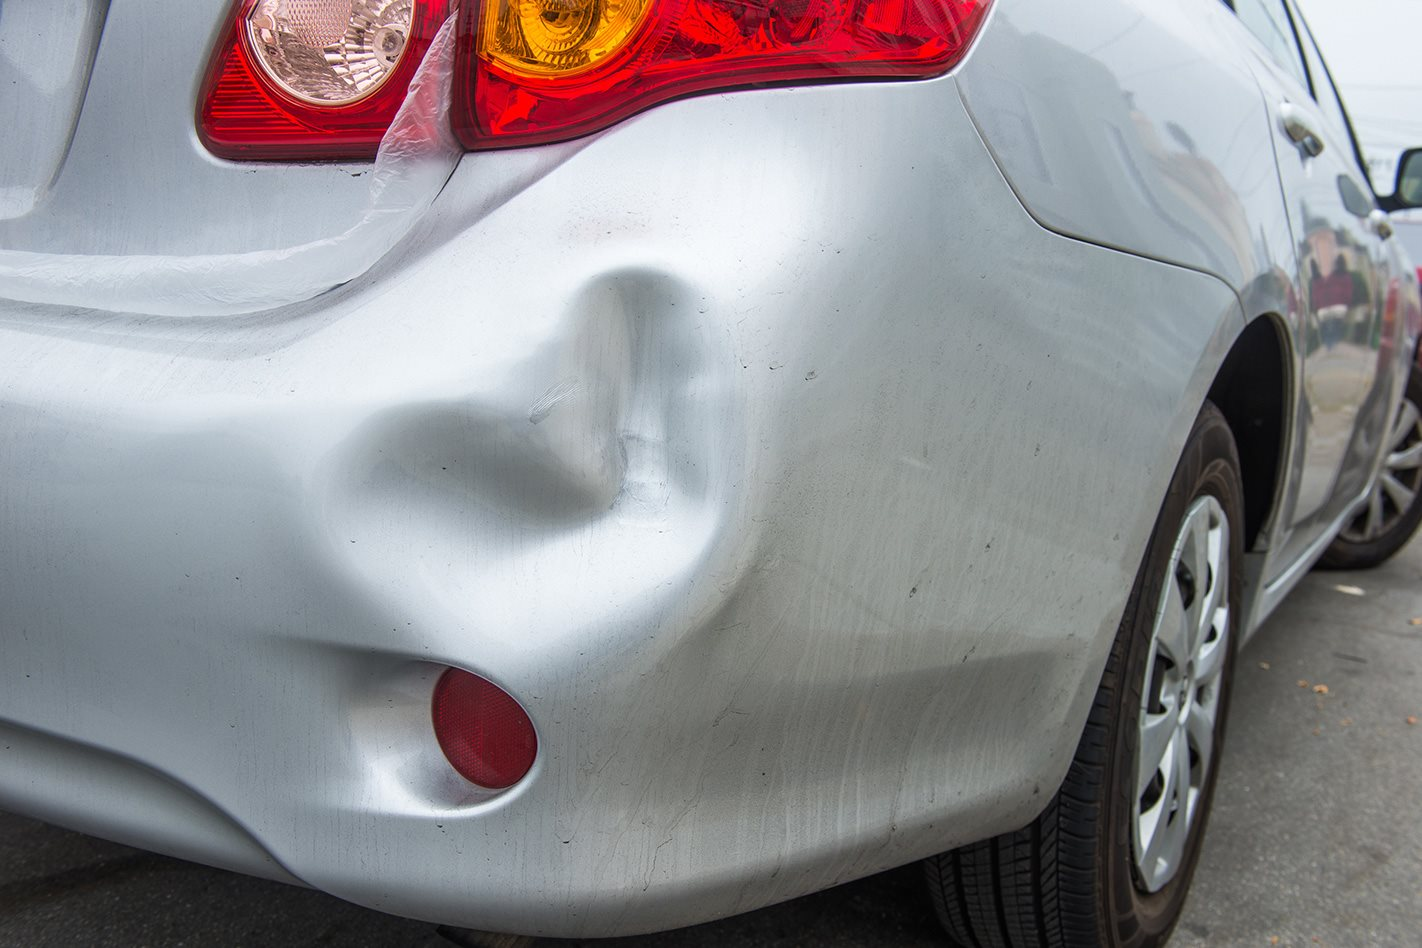 dented car.jpg (172 KB)